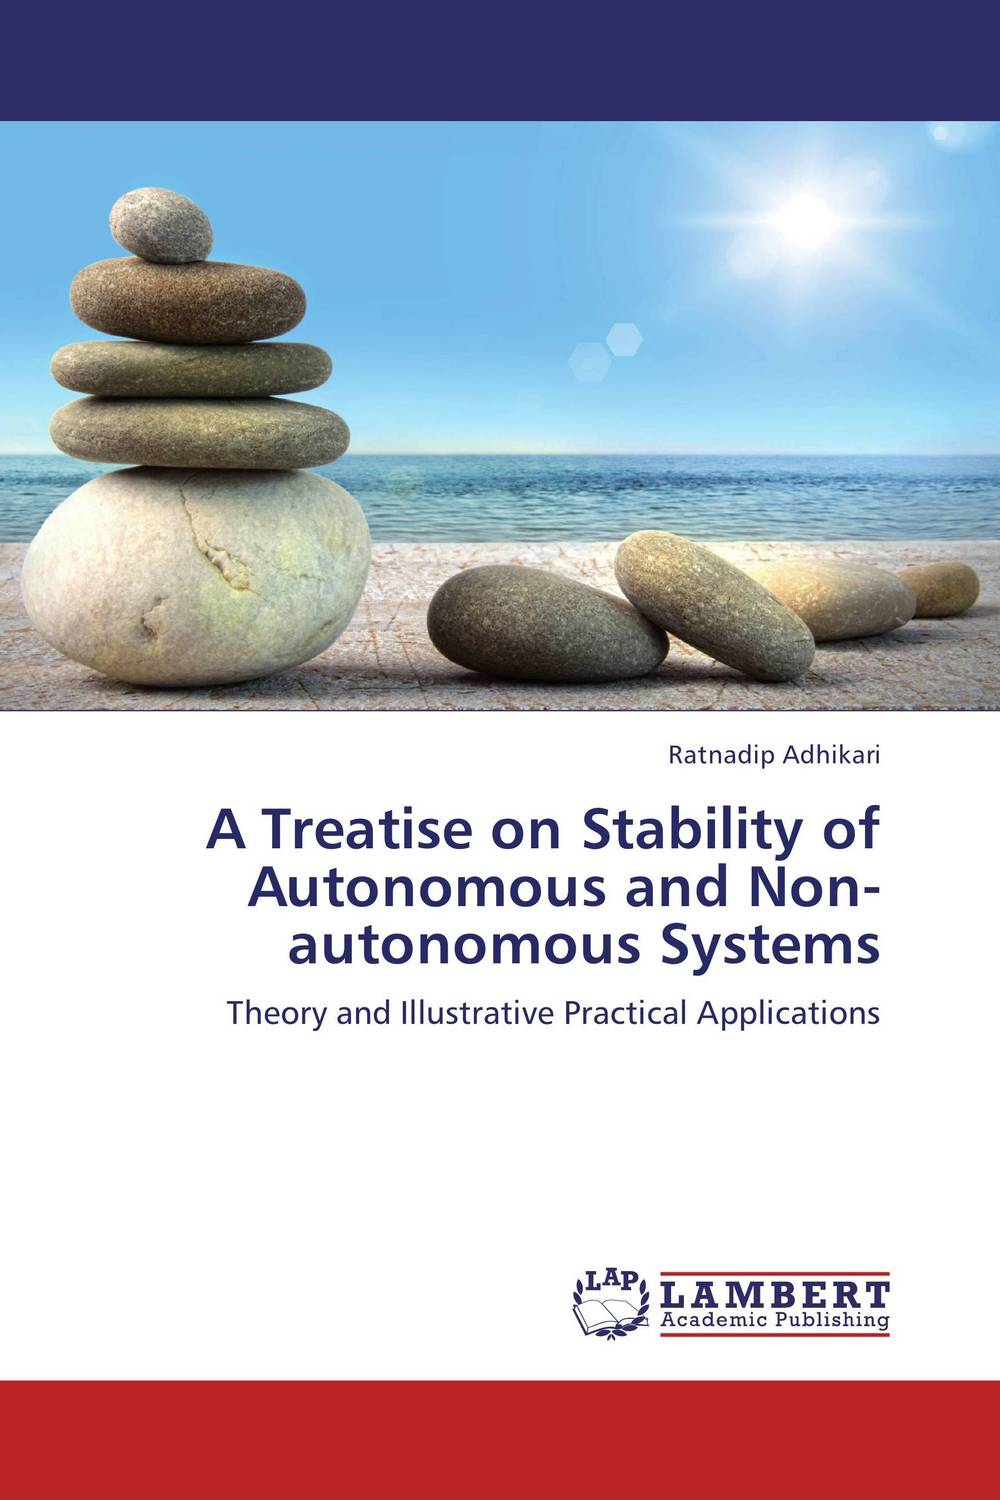 A Treatise on Stability of Autonomous and Non-autonomous Systems vitiligo a treatise of successful homeopathic treatment